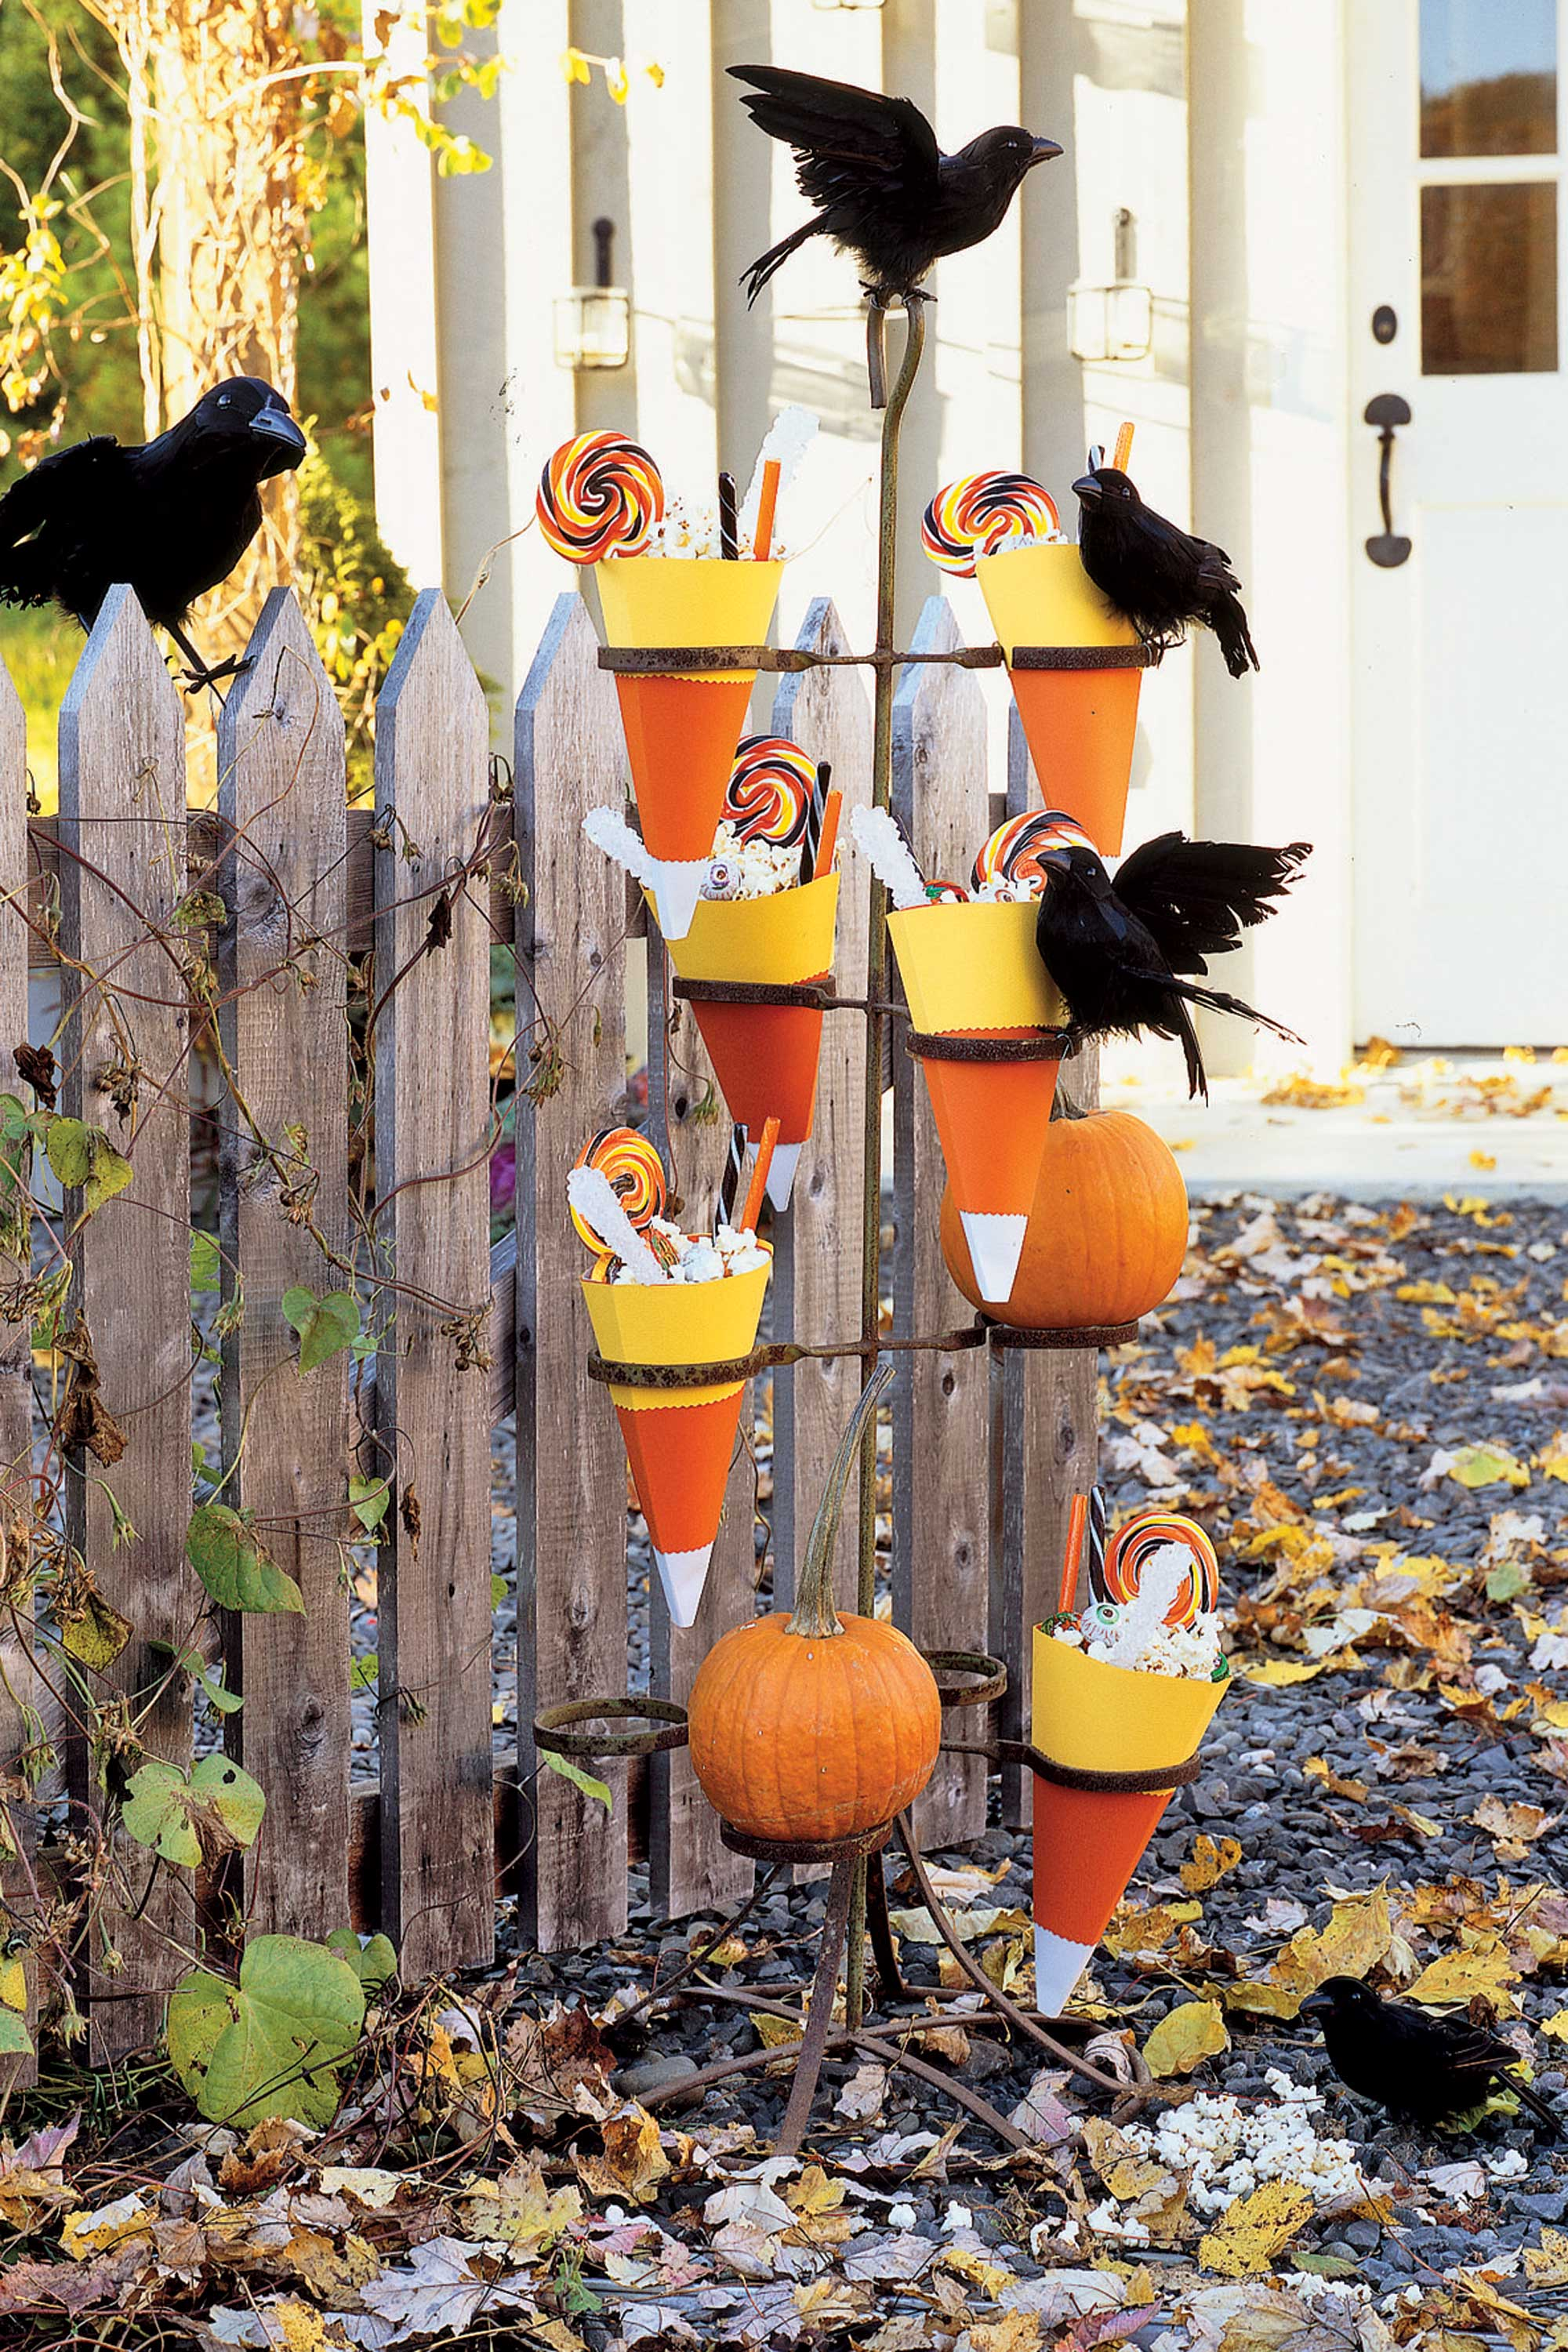 56 fun halloween party decorating ideas spooky halloween party decor - Halloween Decorations For A Party